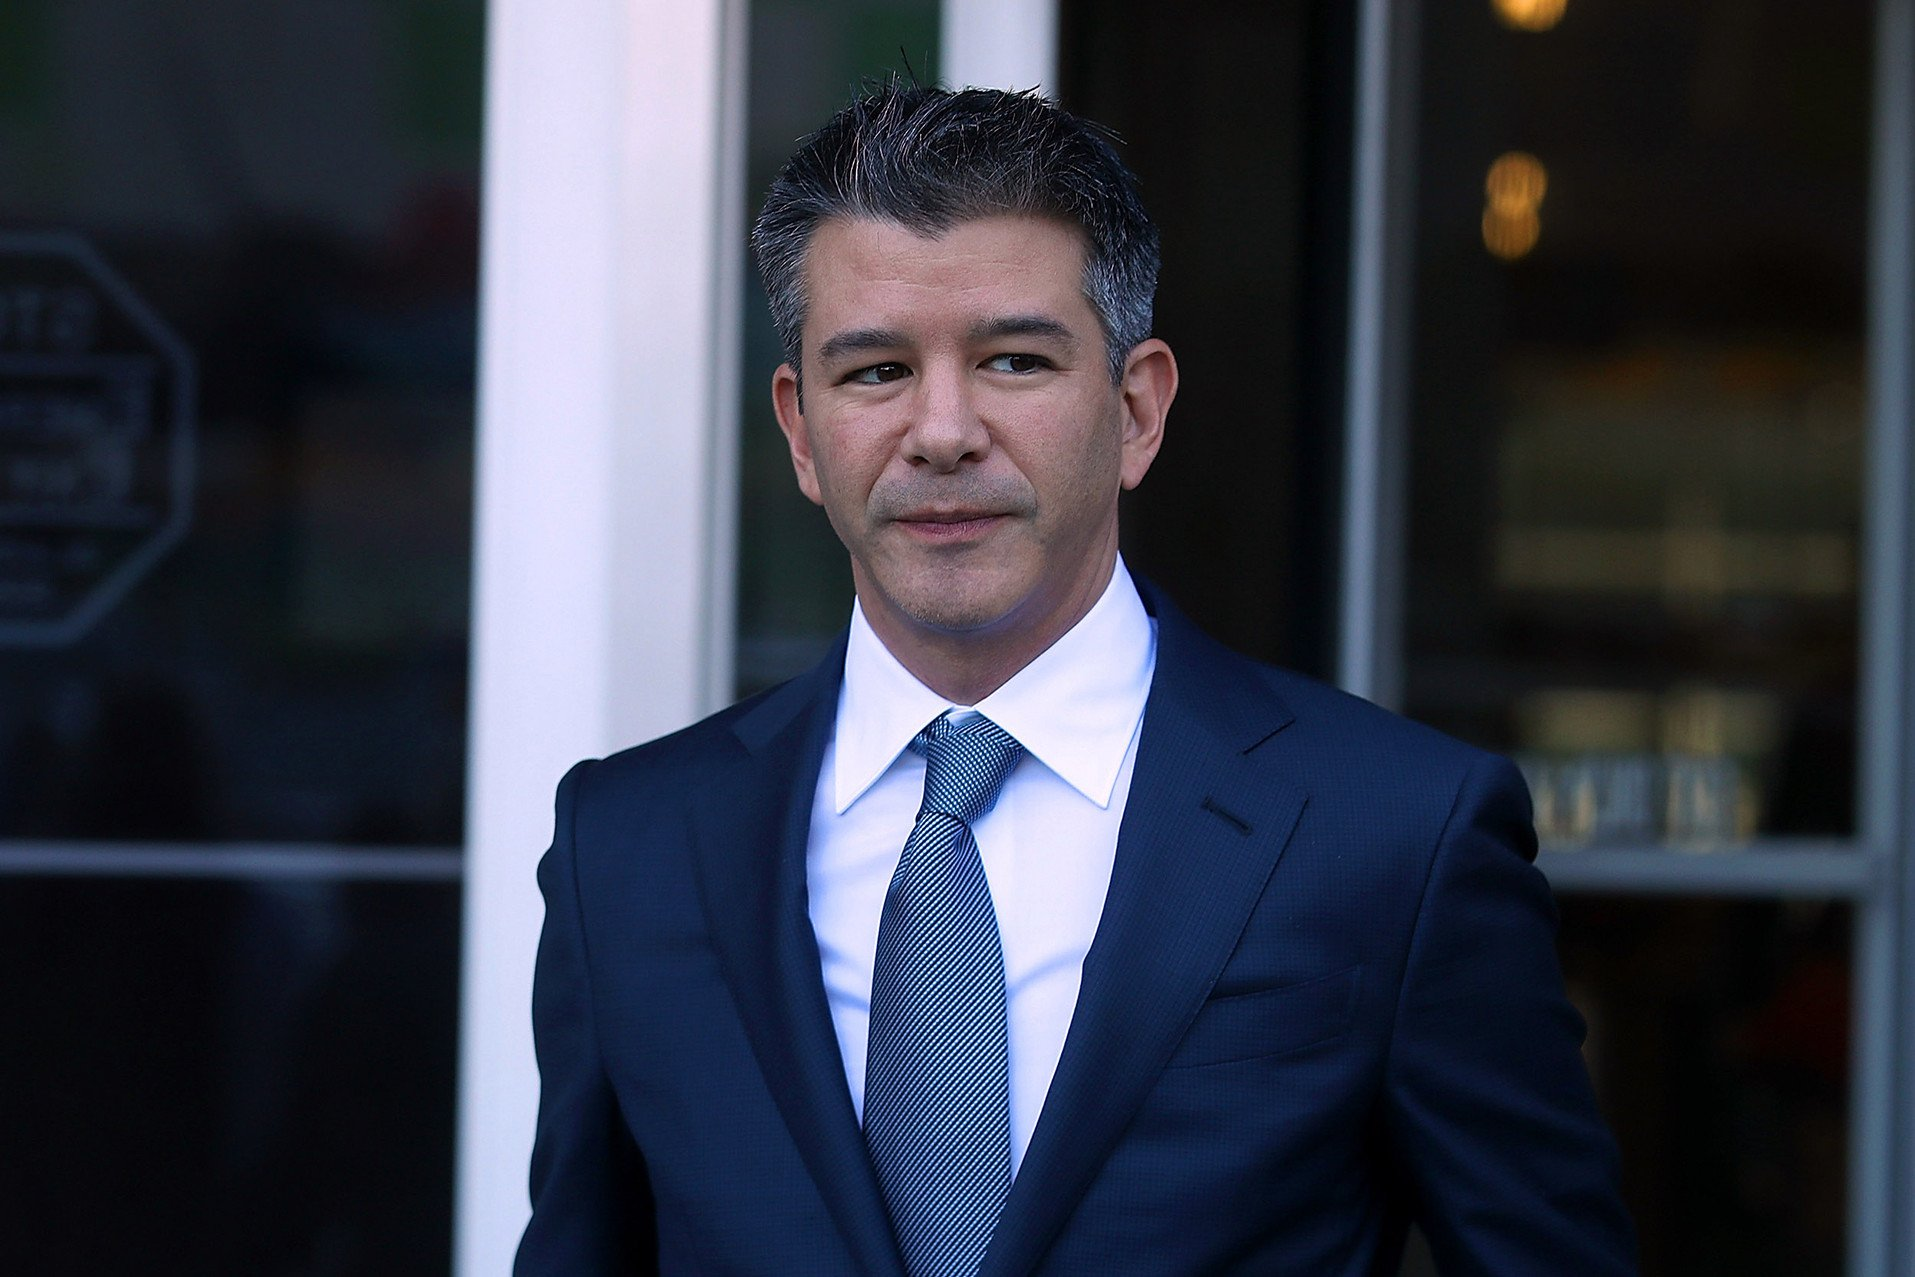 Kalanick: Uber didn't try to steal Waymo self-driving car secrets